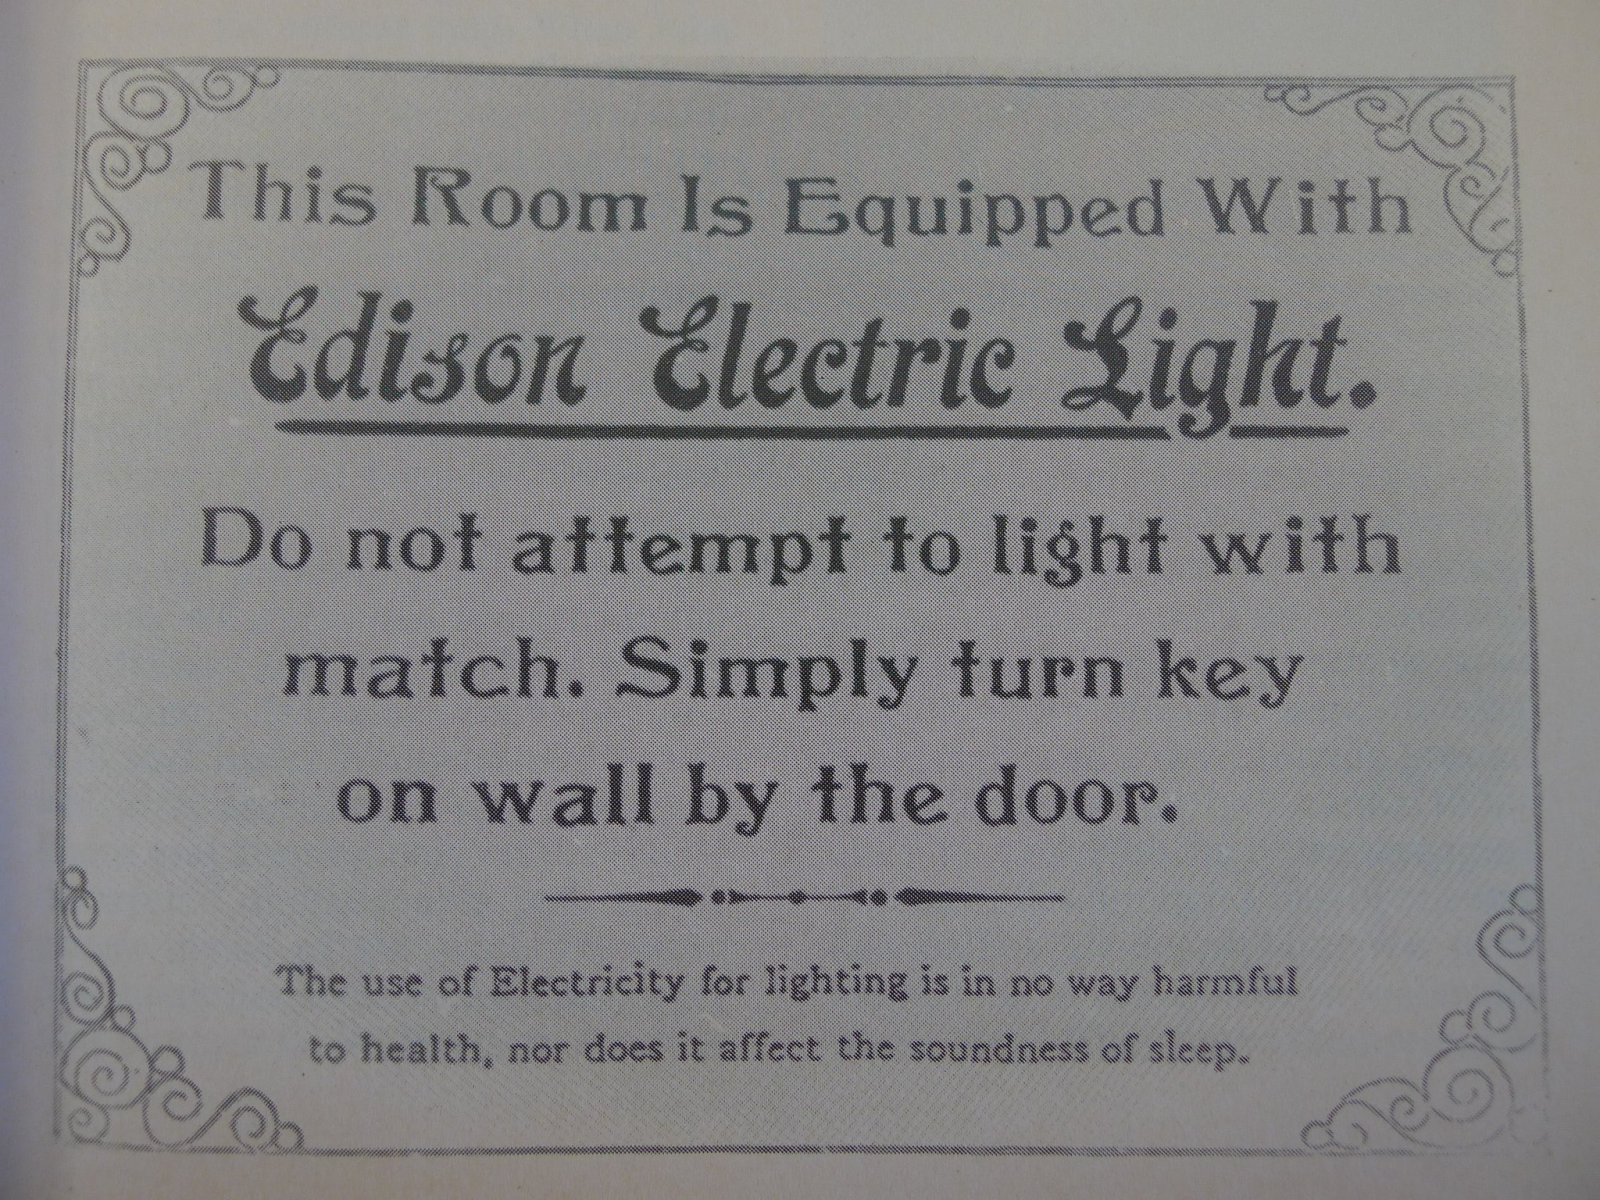 Edison Electric Light - do not attempt to light with match (old instructions)